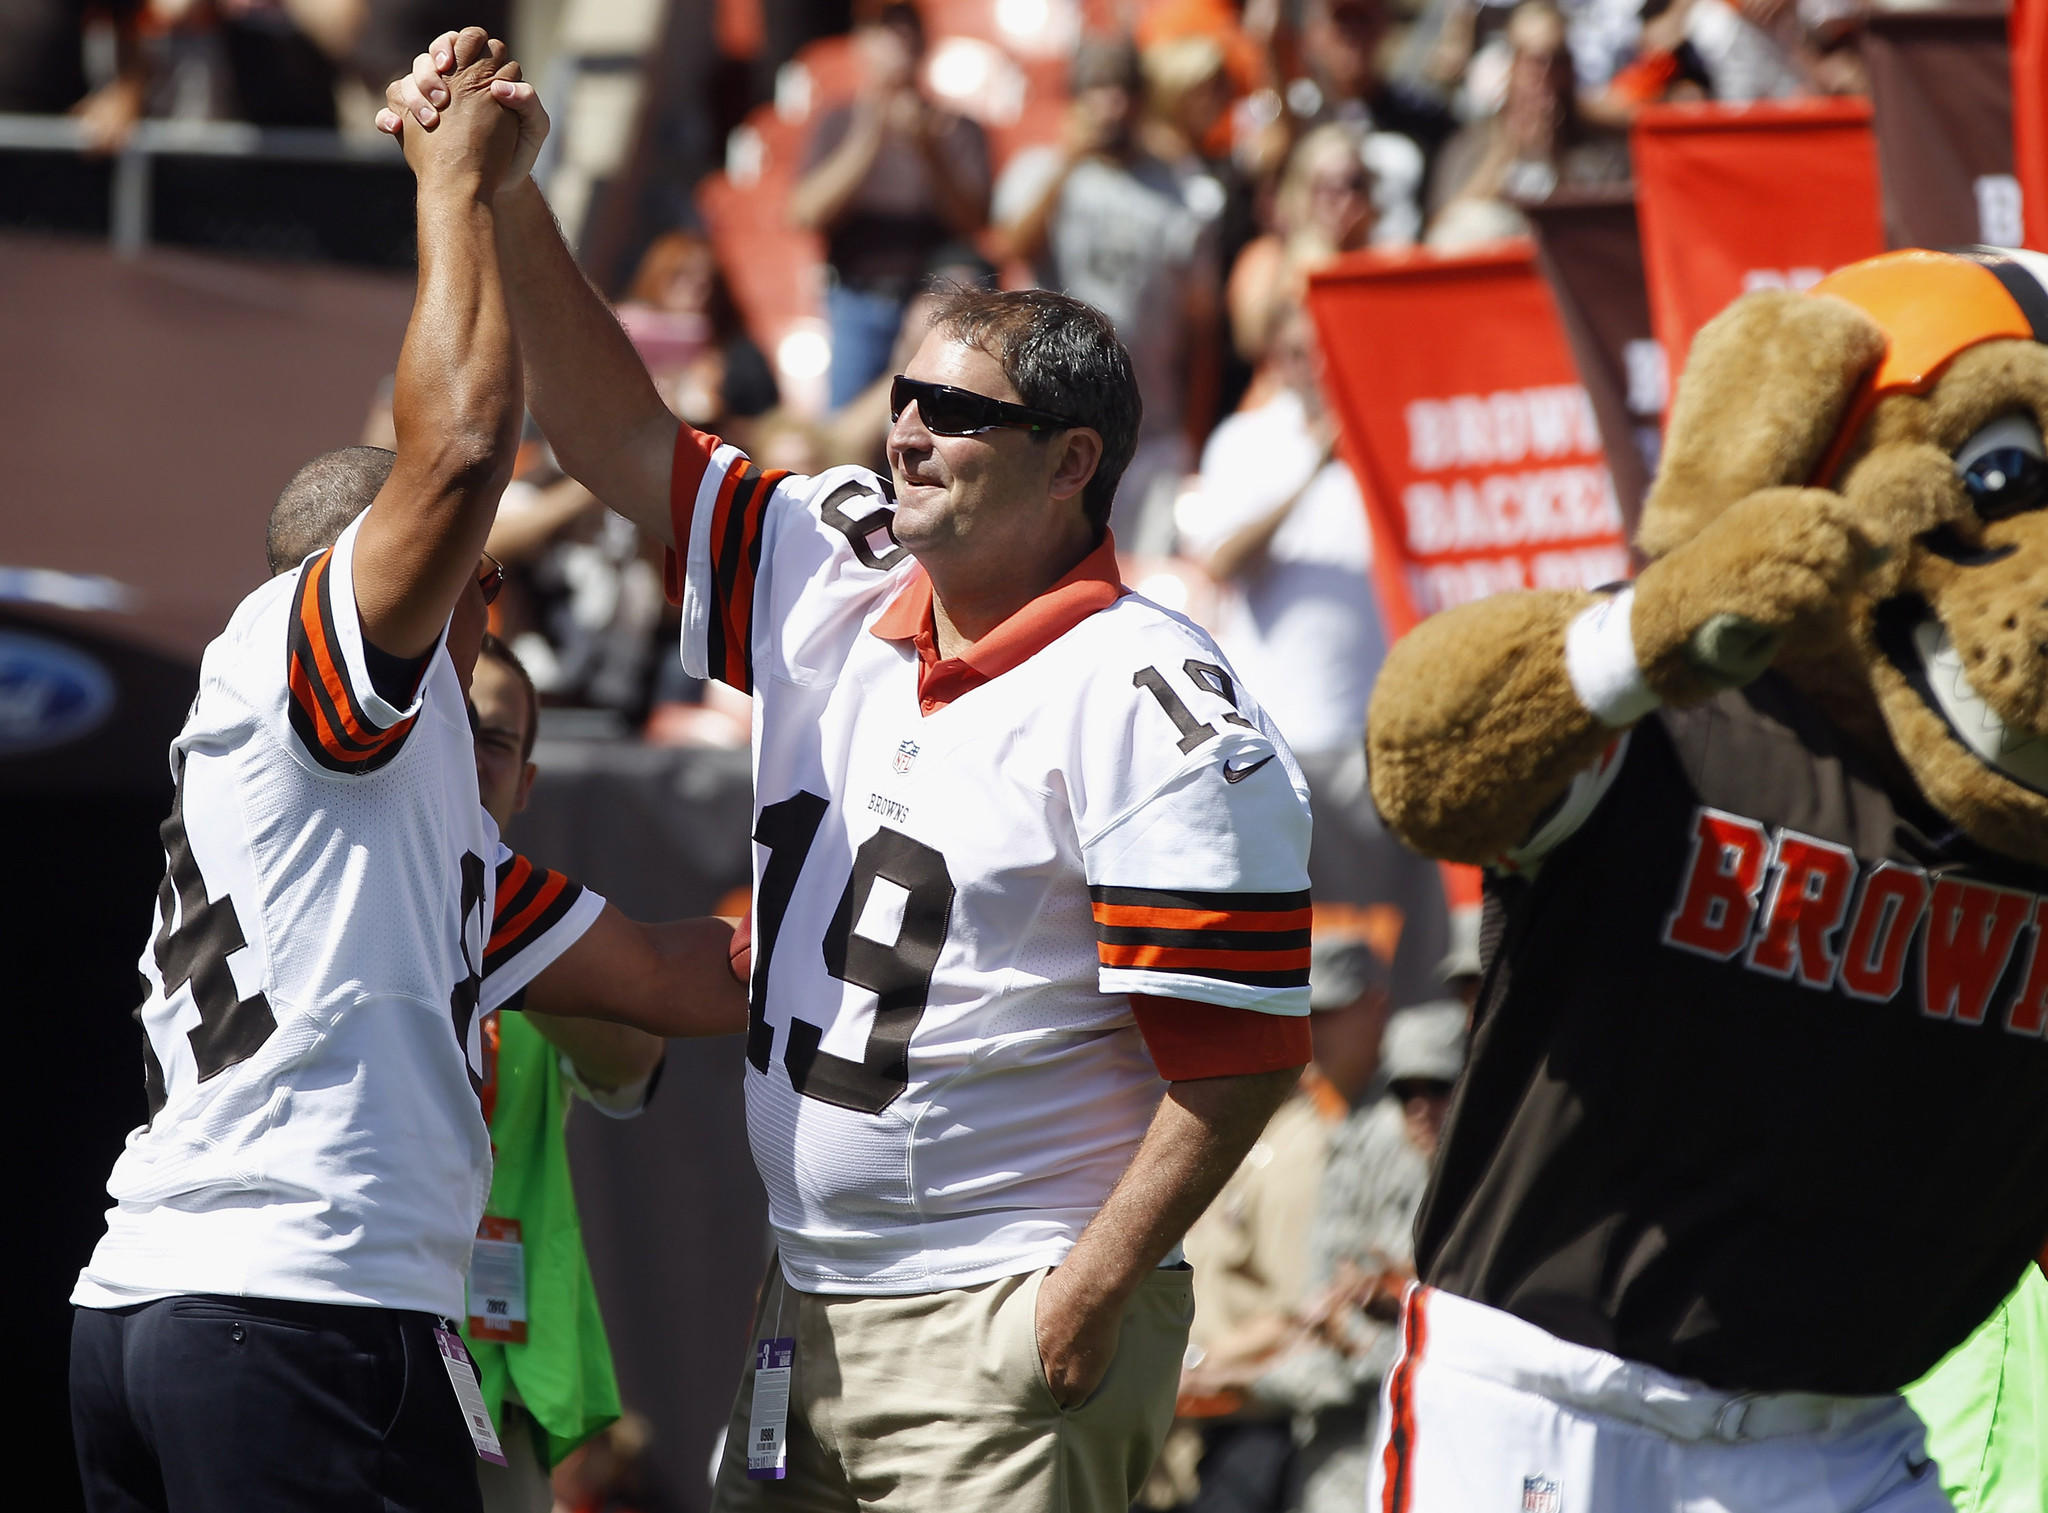 Former Cleveland Browns player Webster Slaughter and Bernie Kosar, right, are honored before the game against the Philadelphia Eagles on Sept. 9, 2012.